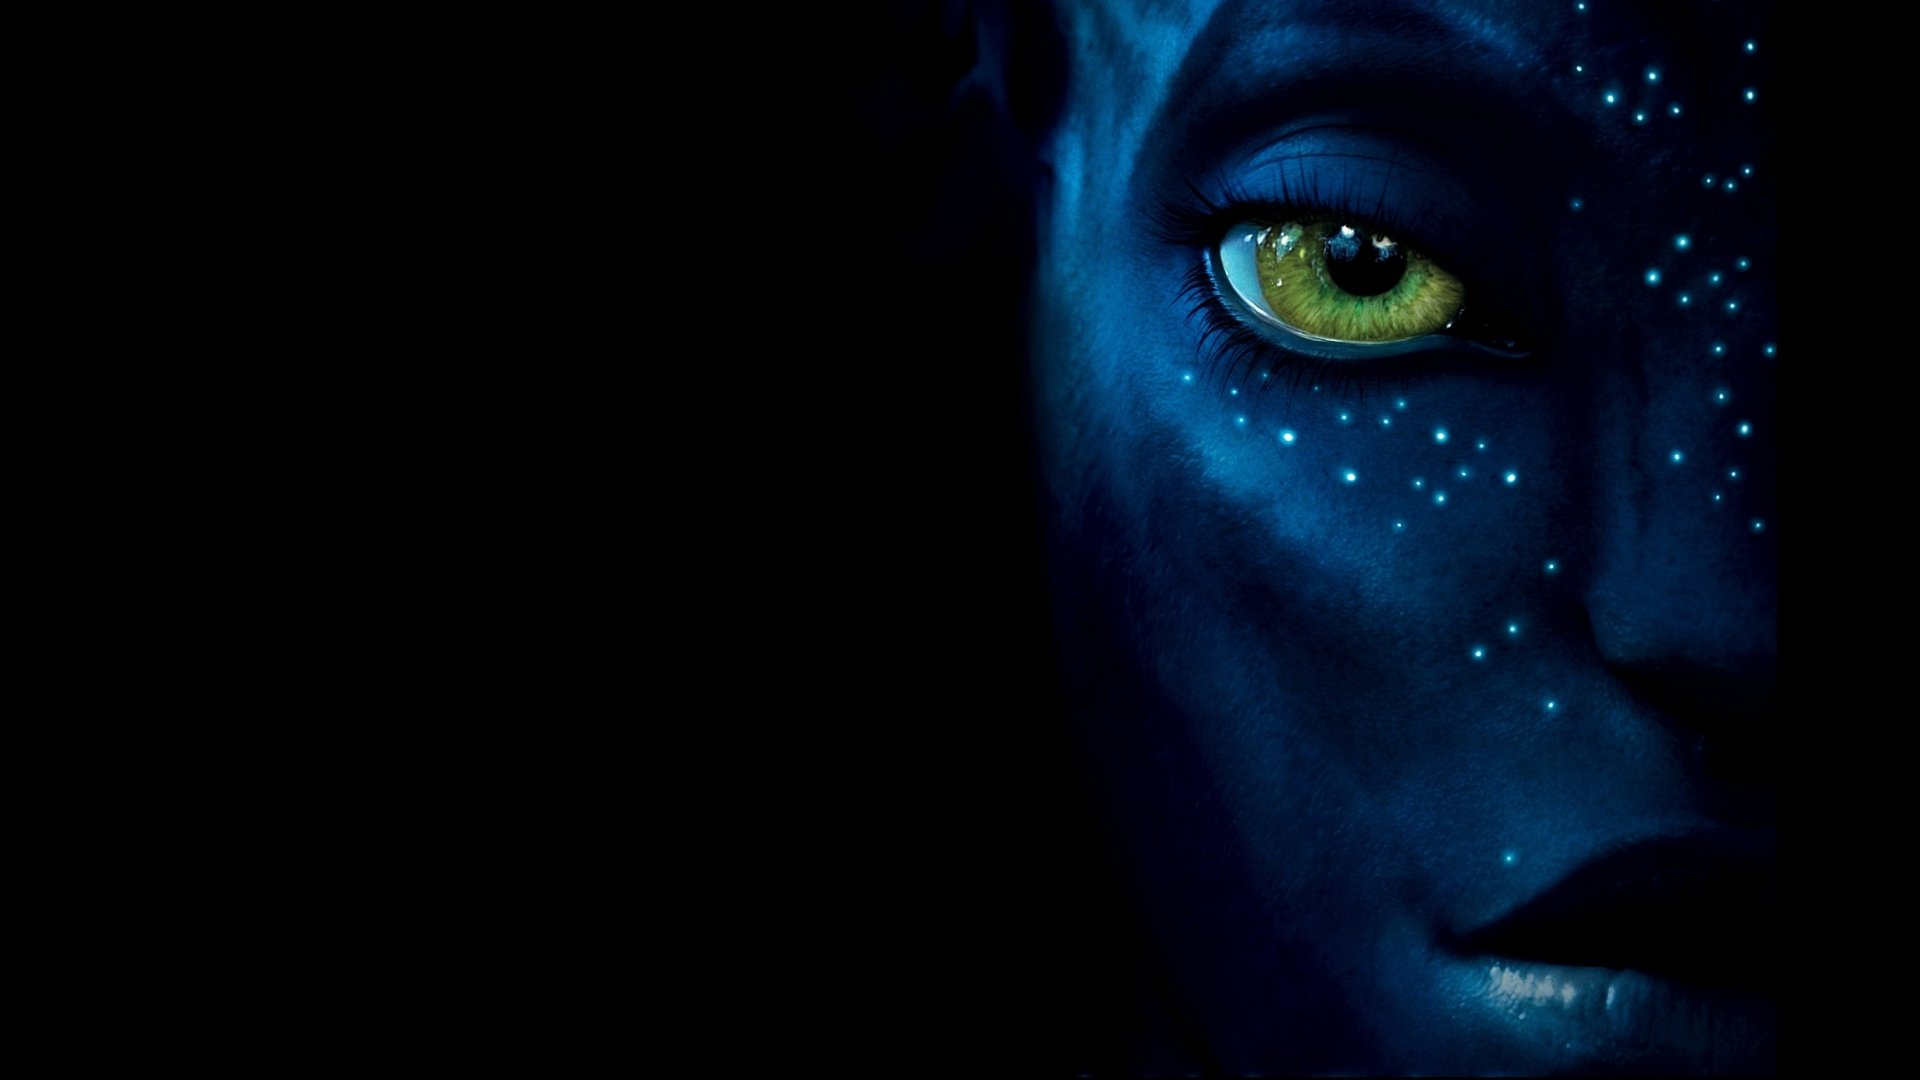 Avatar Wallpapers 1920x1080 Full Hd 1080p Desktop Backgrounds